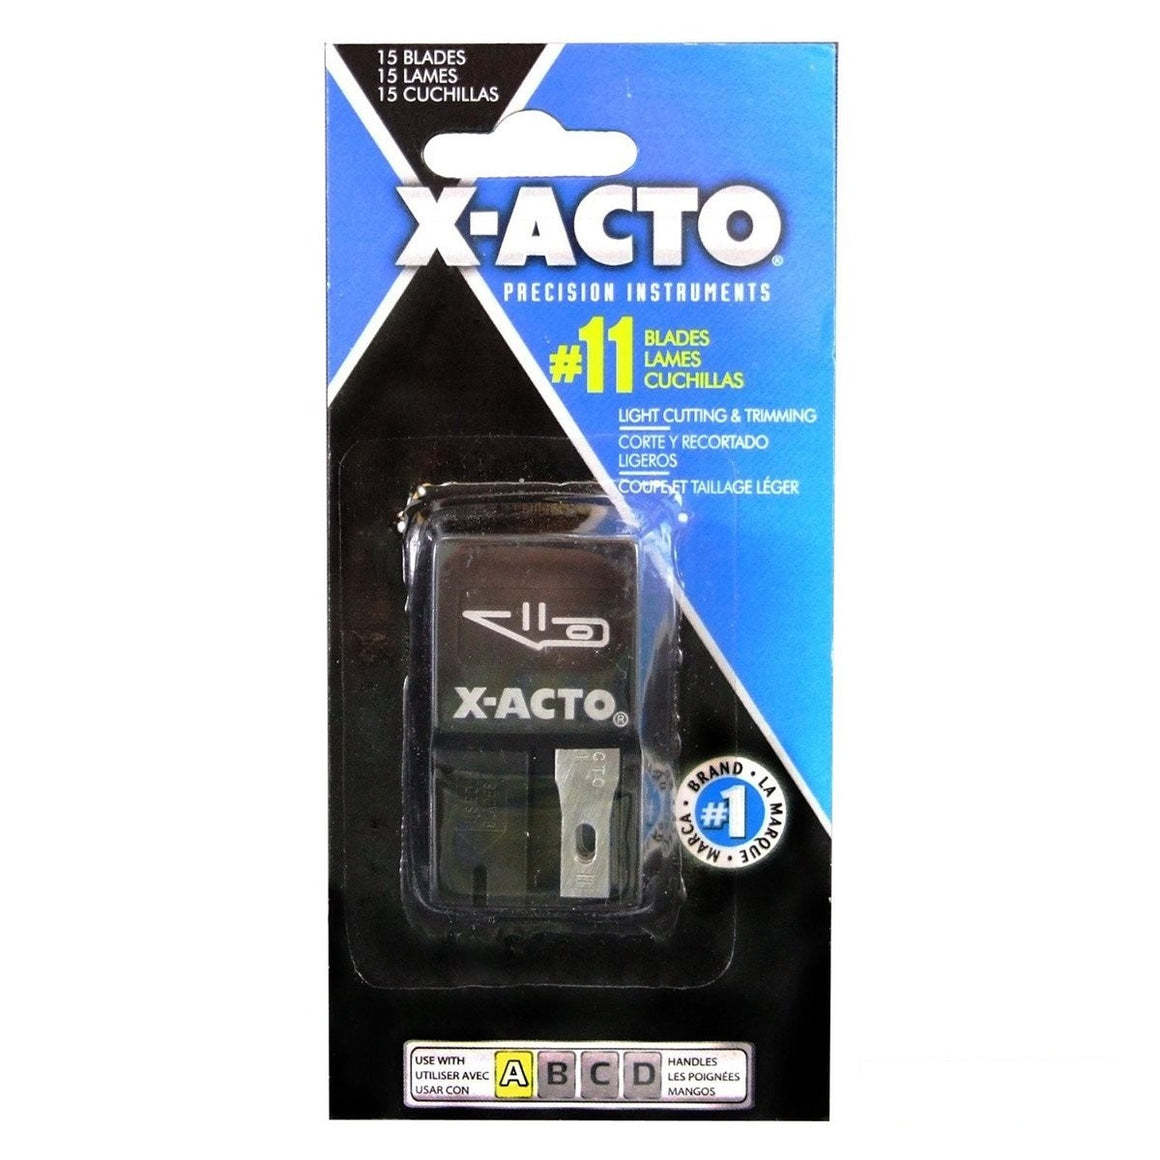 X-ACTO #11 Classic Fine Point Blade Replacements - Stainless Steel - 15 pack